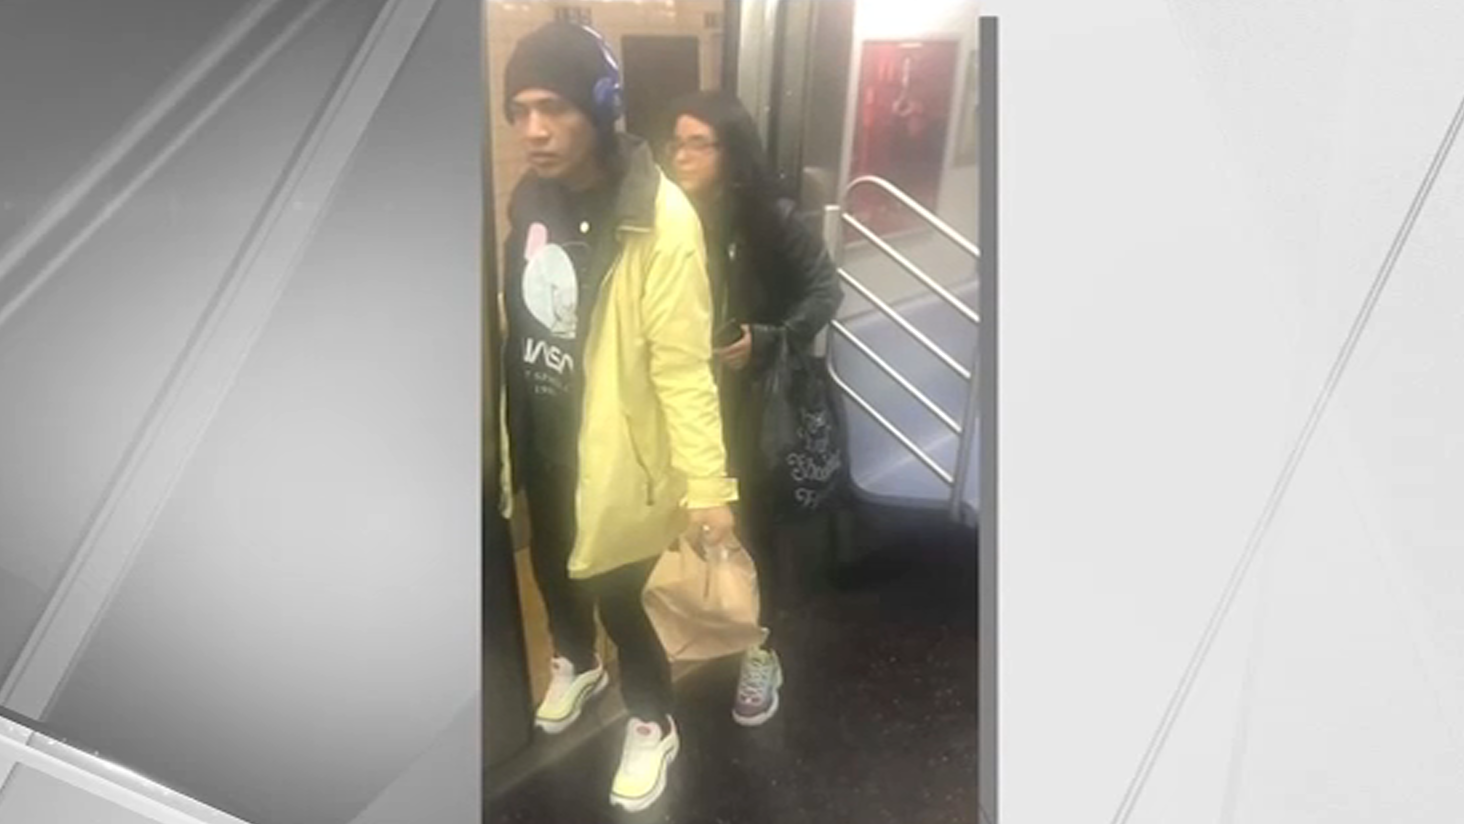 NYPD Investigating Subway 'Transphobic Attack' as Hate Crime: Mayor de Blasio